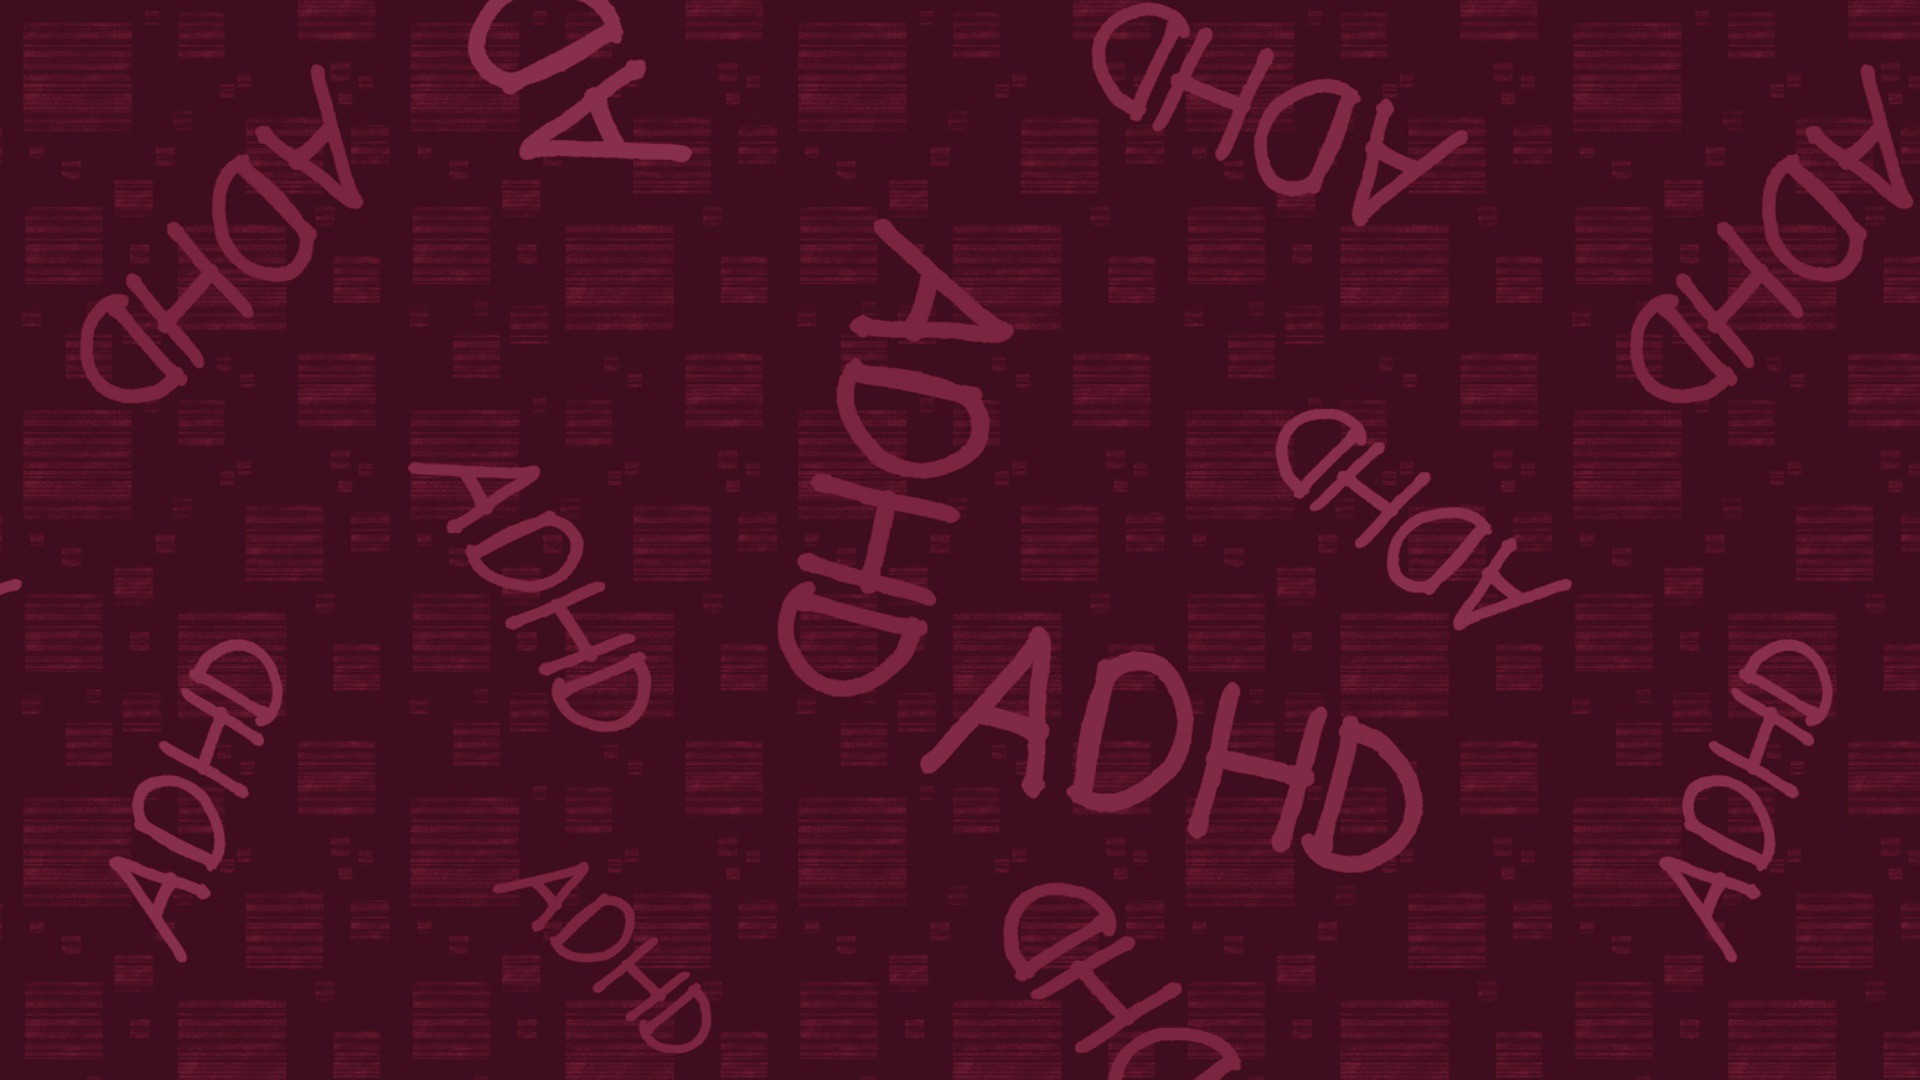 ADHD Drugs and Diet - Complete Wellbeing